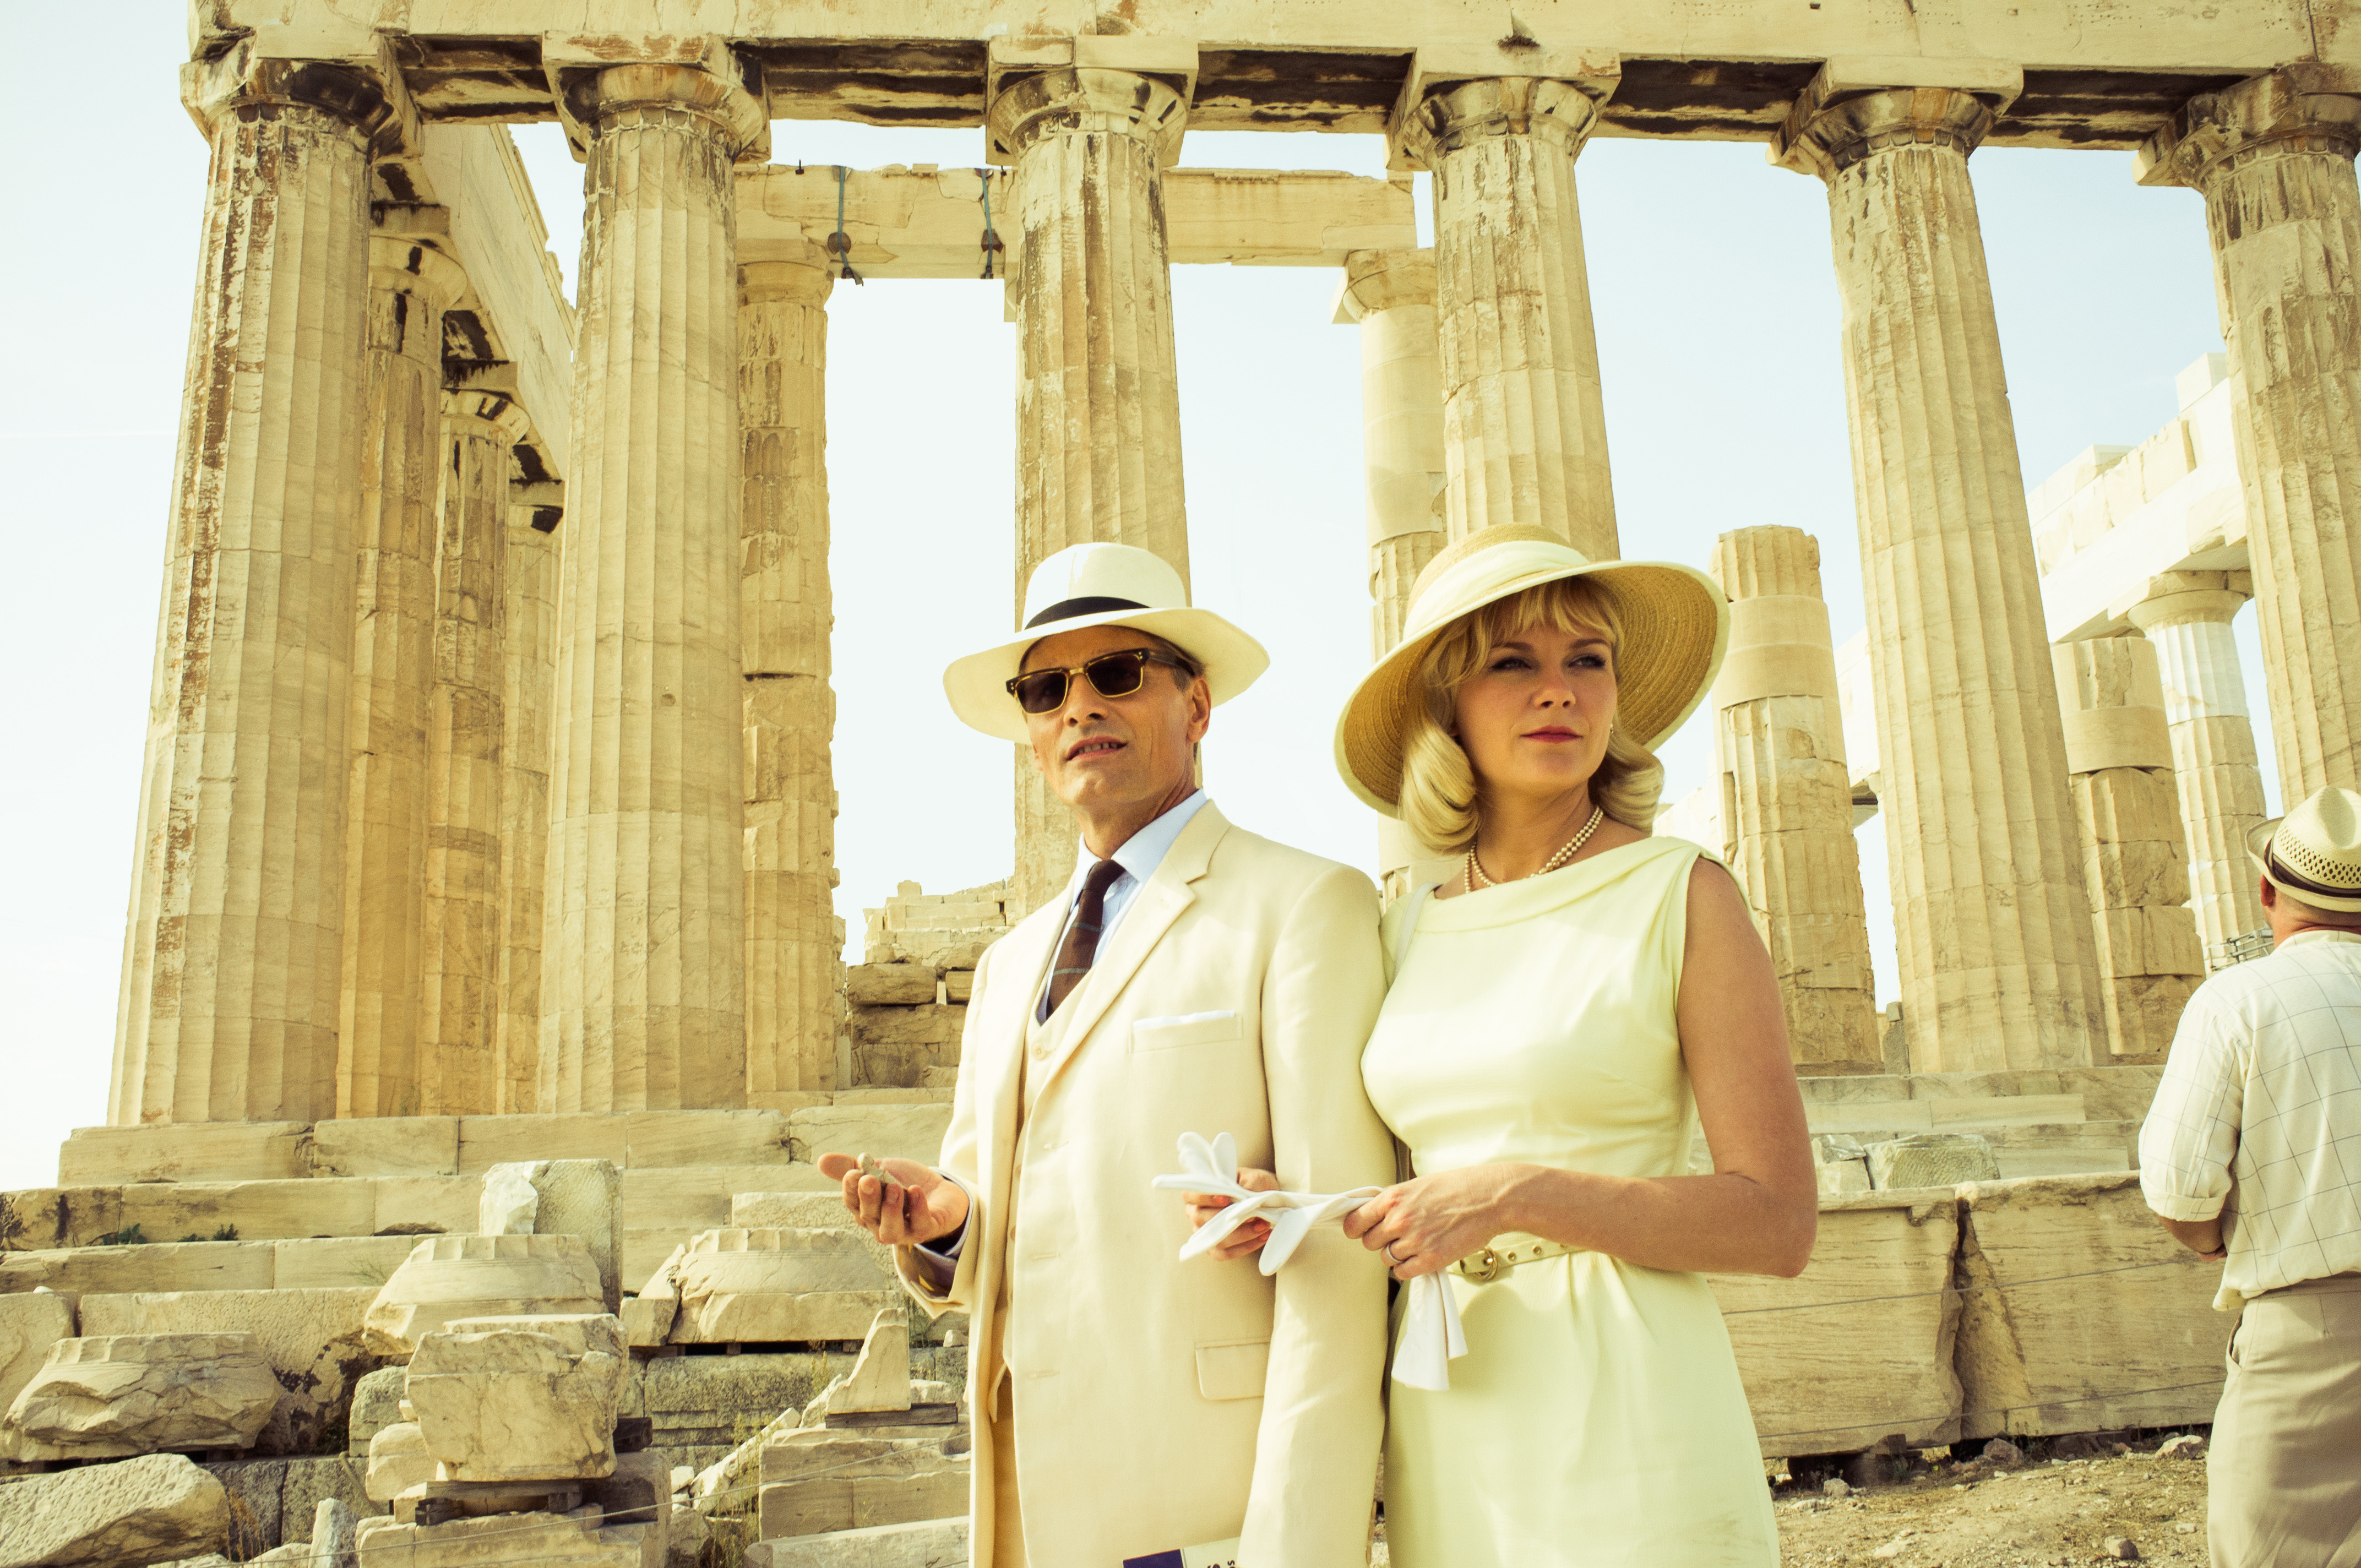 Kirsten Dunst's Contemporary '60s Style In 'The Two Faces of January'